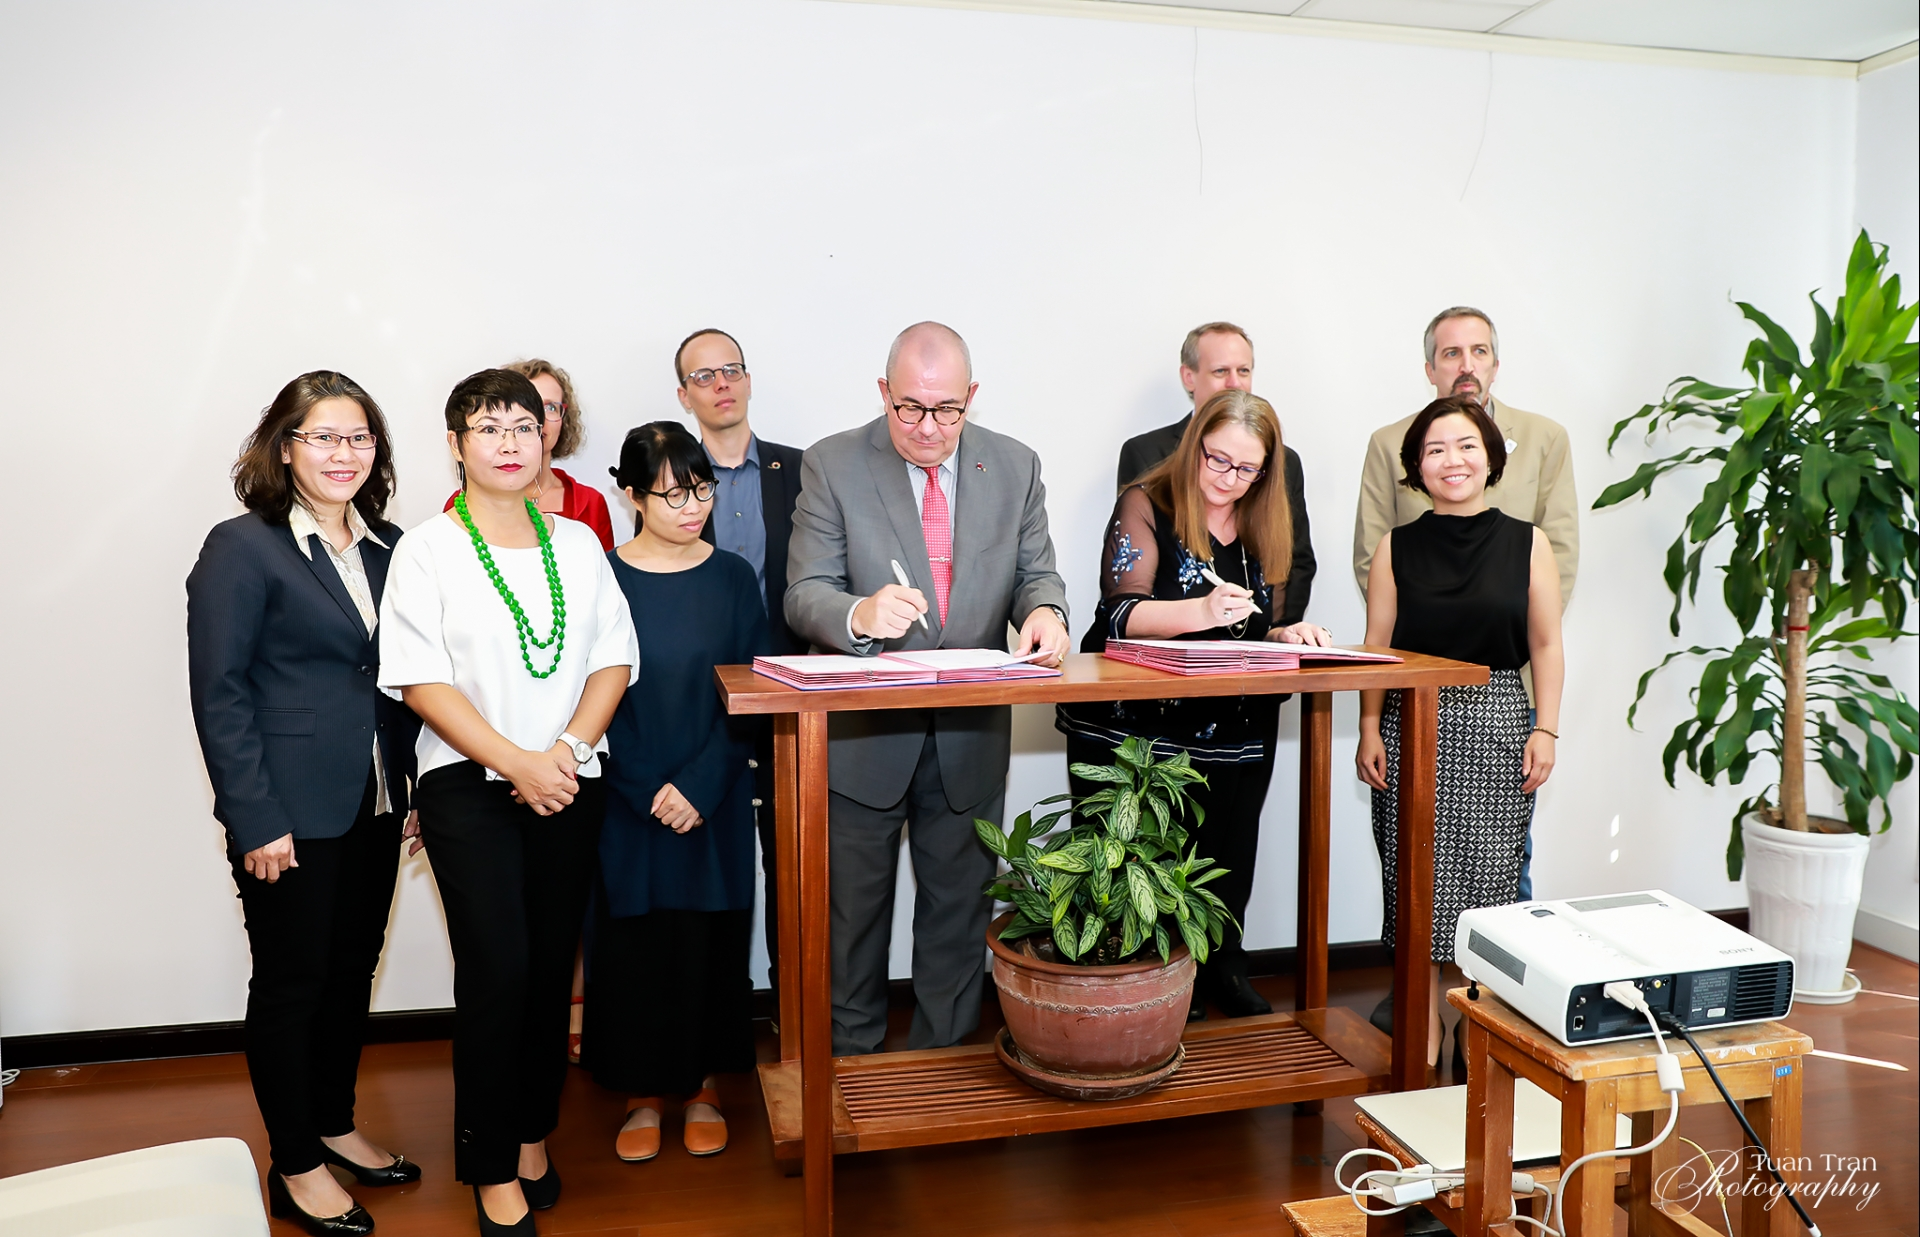 Non-government organisations sign charter on sustainable environment